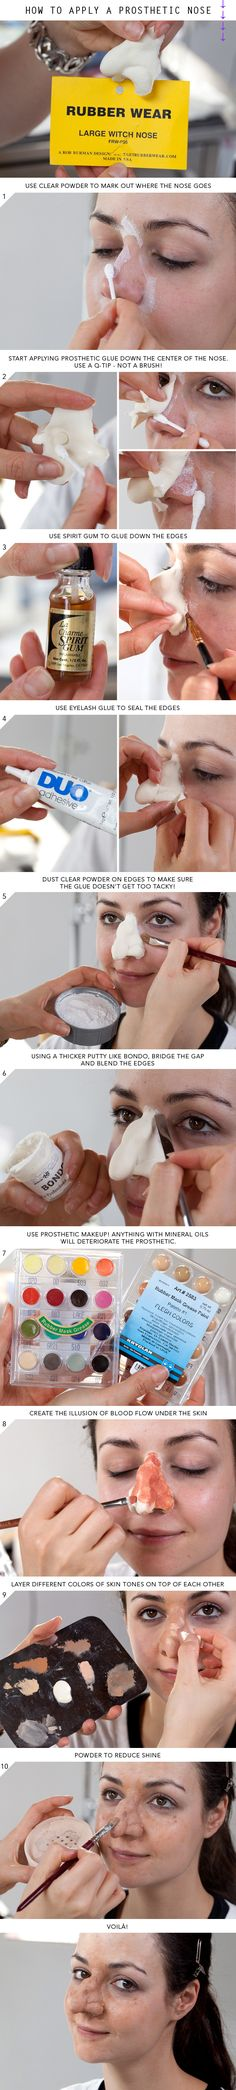 Halloween How-To: The Easiest Way to Apply a Prosthetic Nose | Beautylish